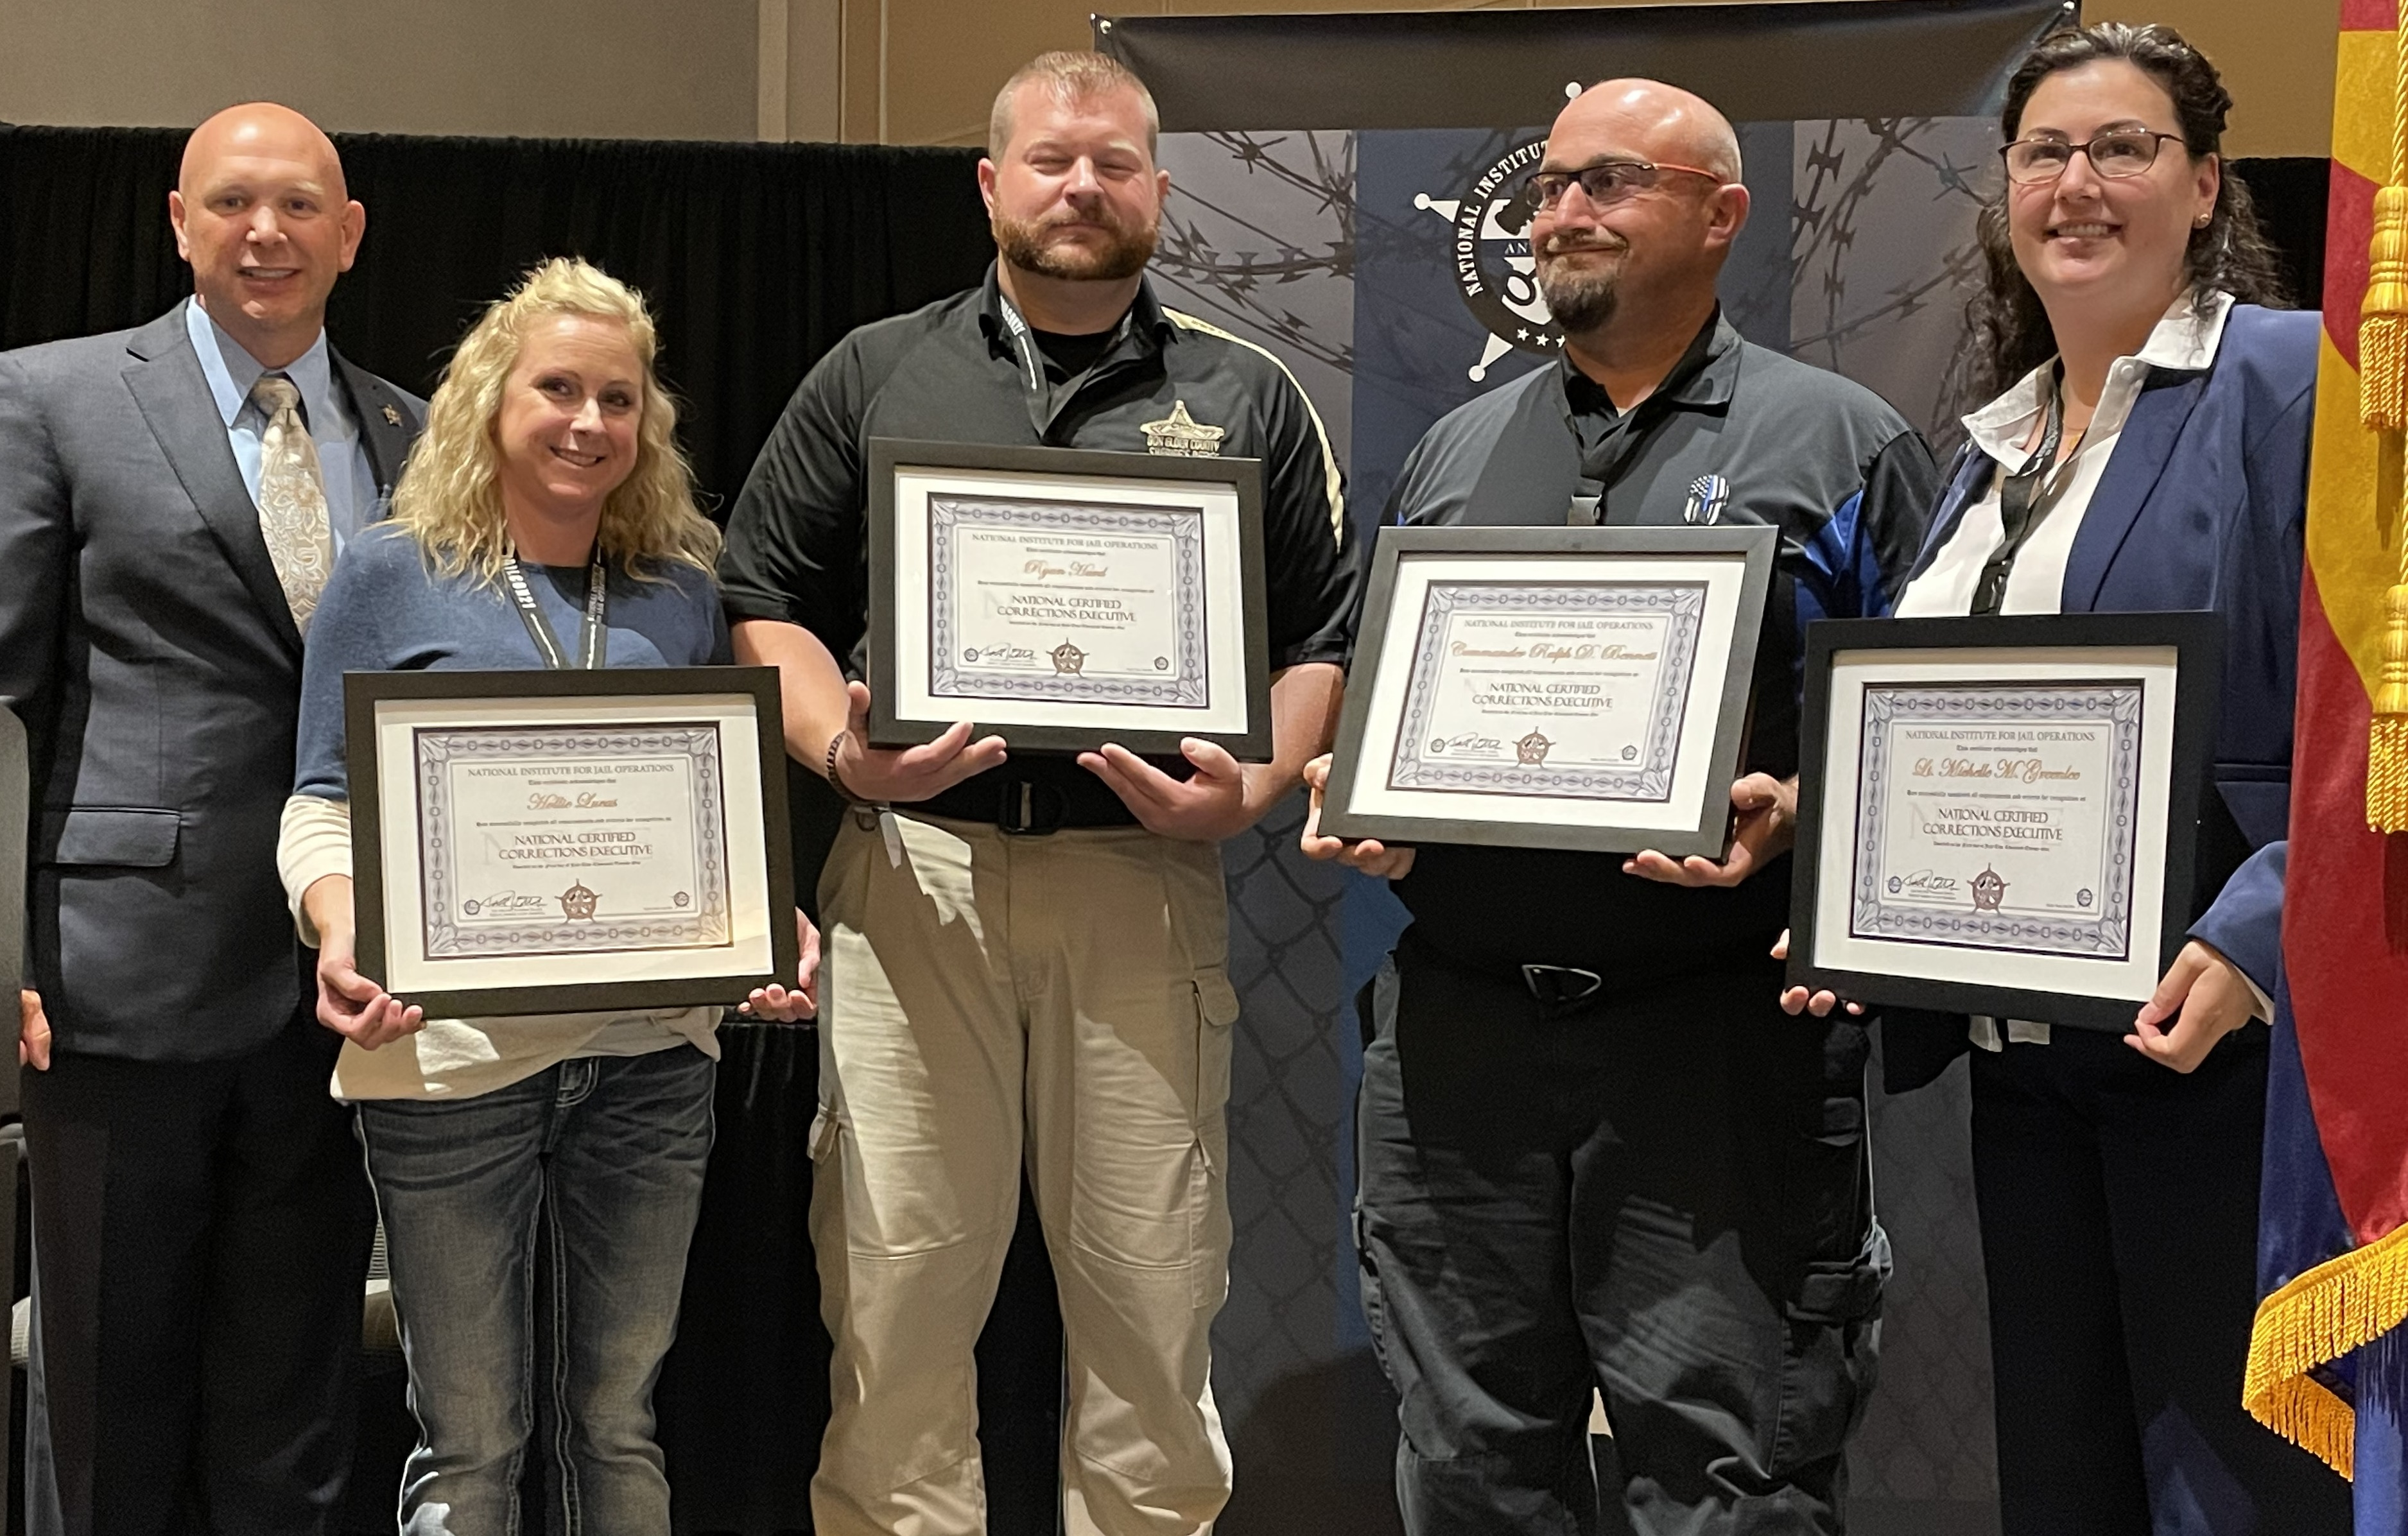 JAILCON21 West National Certified Corrections Executive (NCCE) Recipients